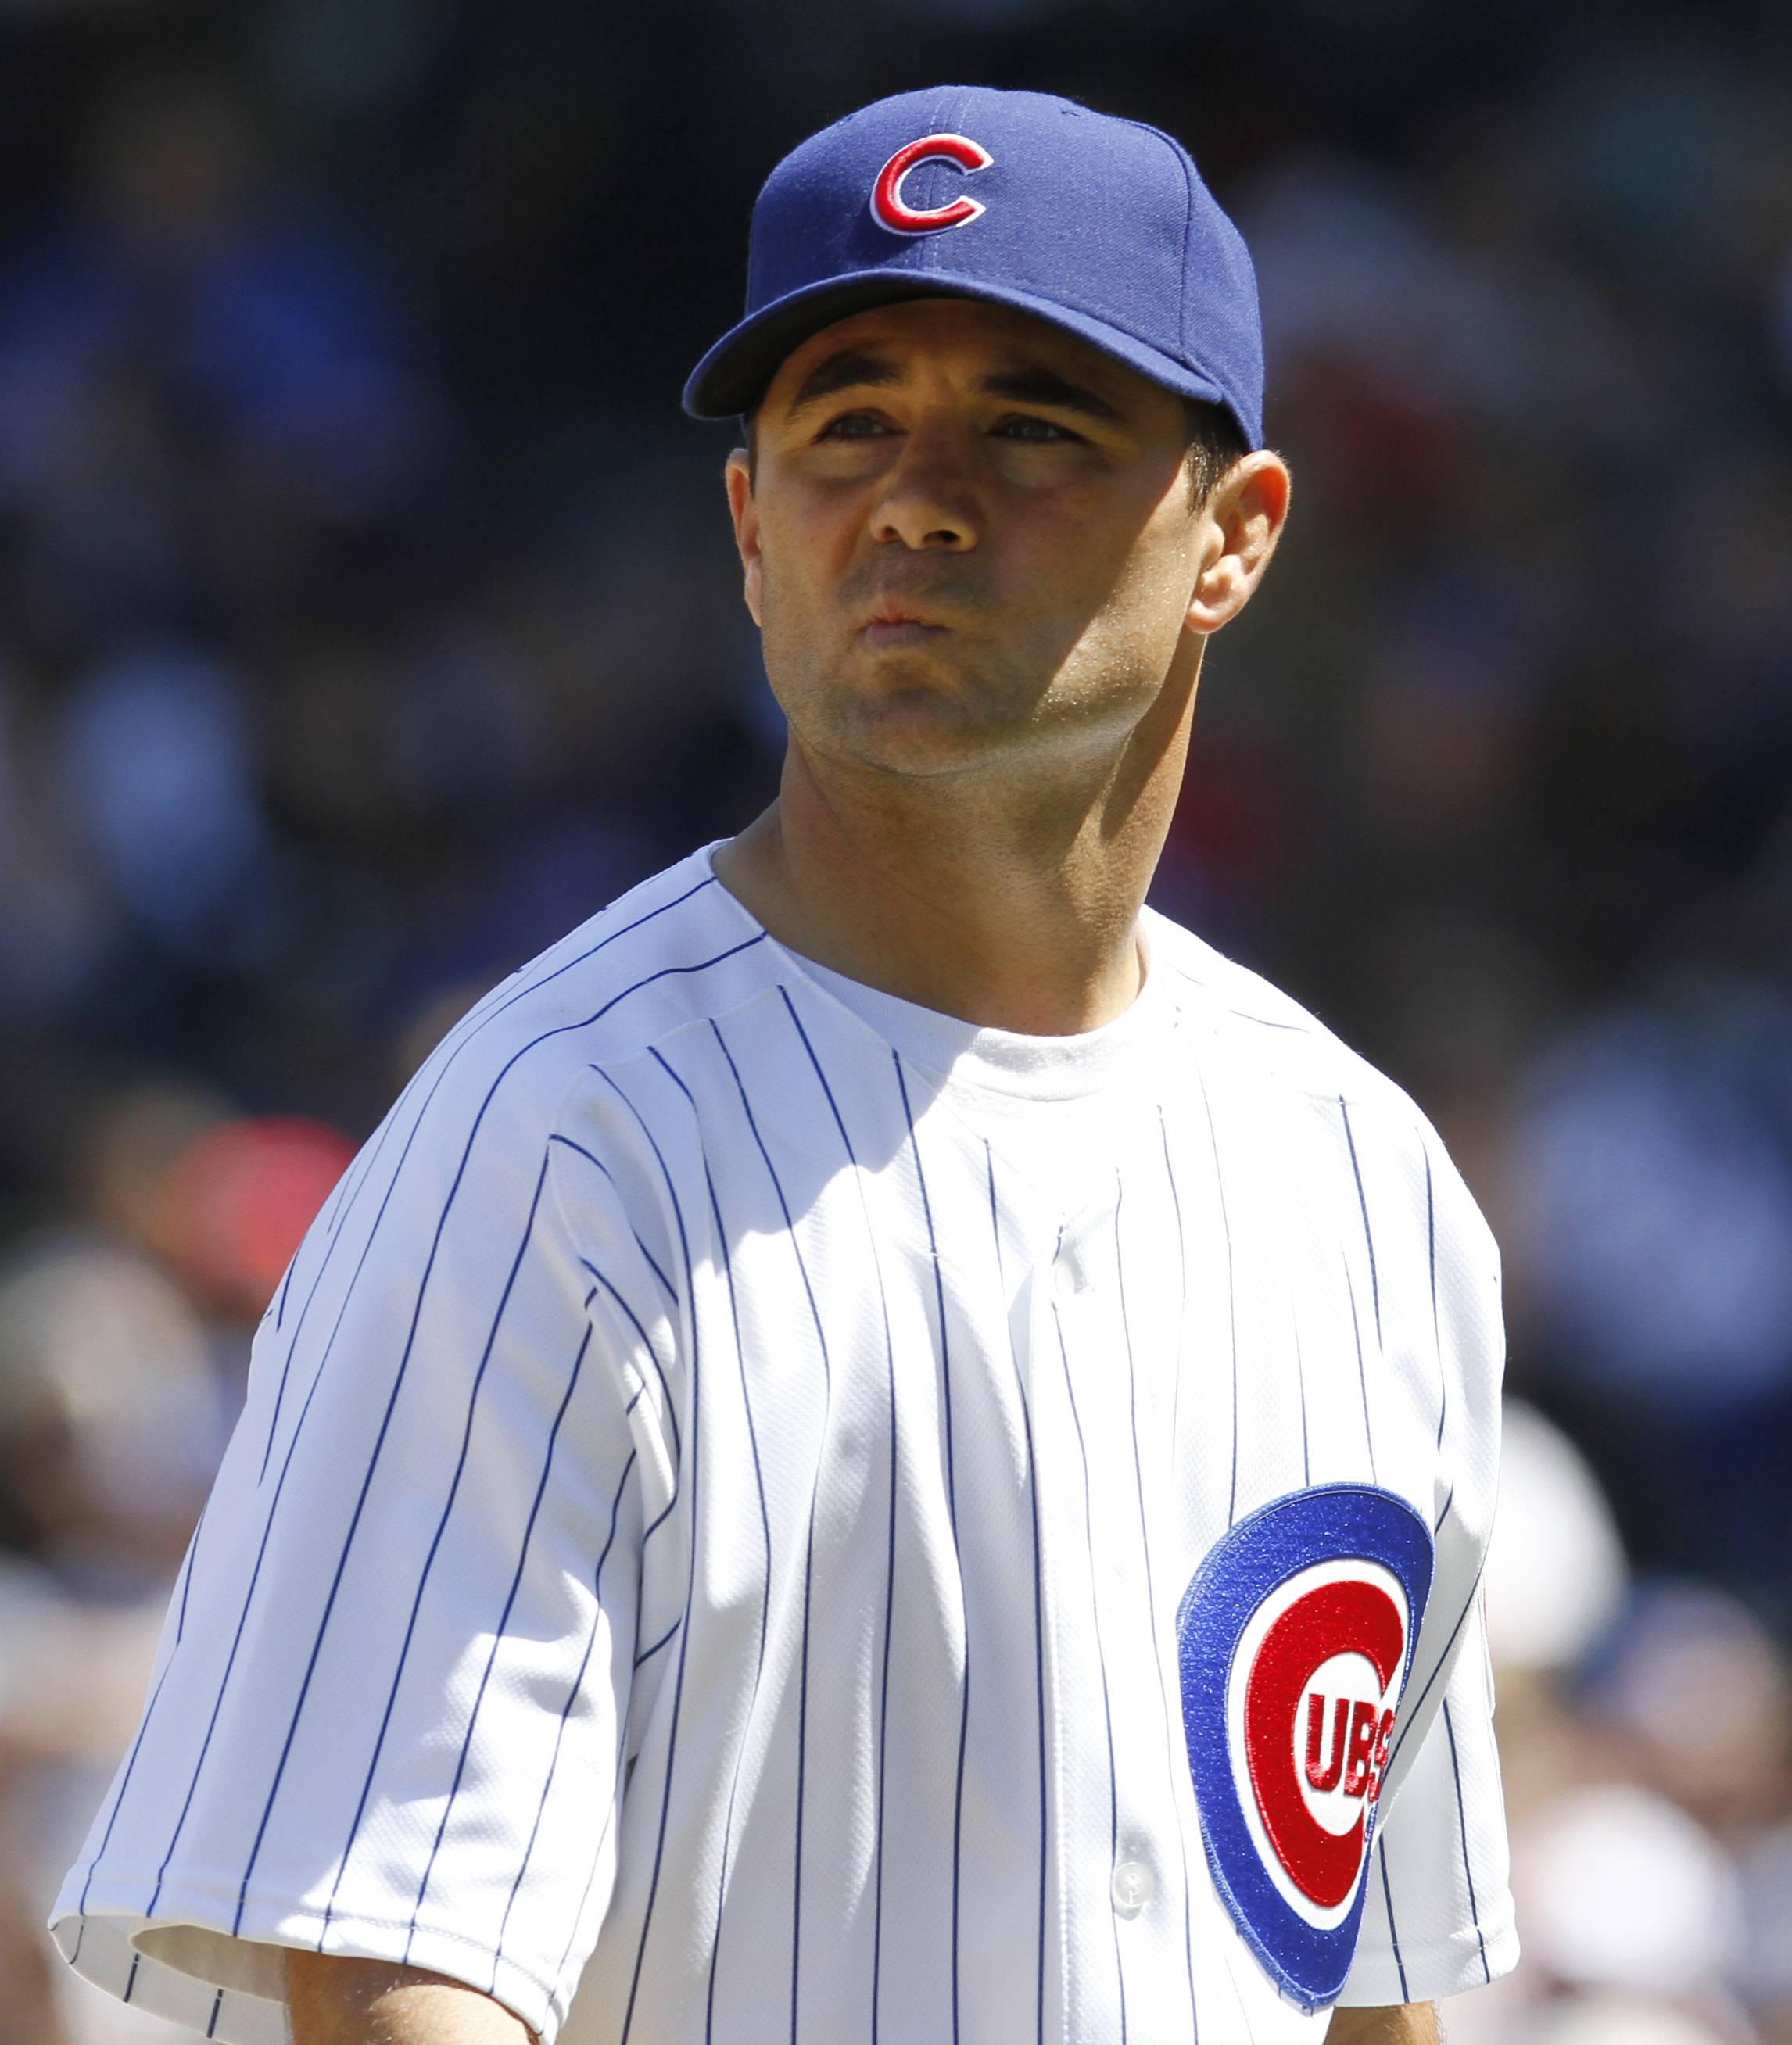 Ted Lilly pitched in 15 major-league seasons, including with the Cubs from 2007 through July 2010, with a record of 130-113 and an ERA of 4.14. Lilly on Tuesday was named a special assistant to Cubs general manager Jed Hoyer and president Theo Epstein.